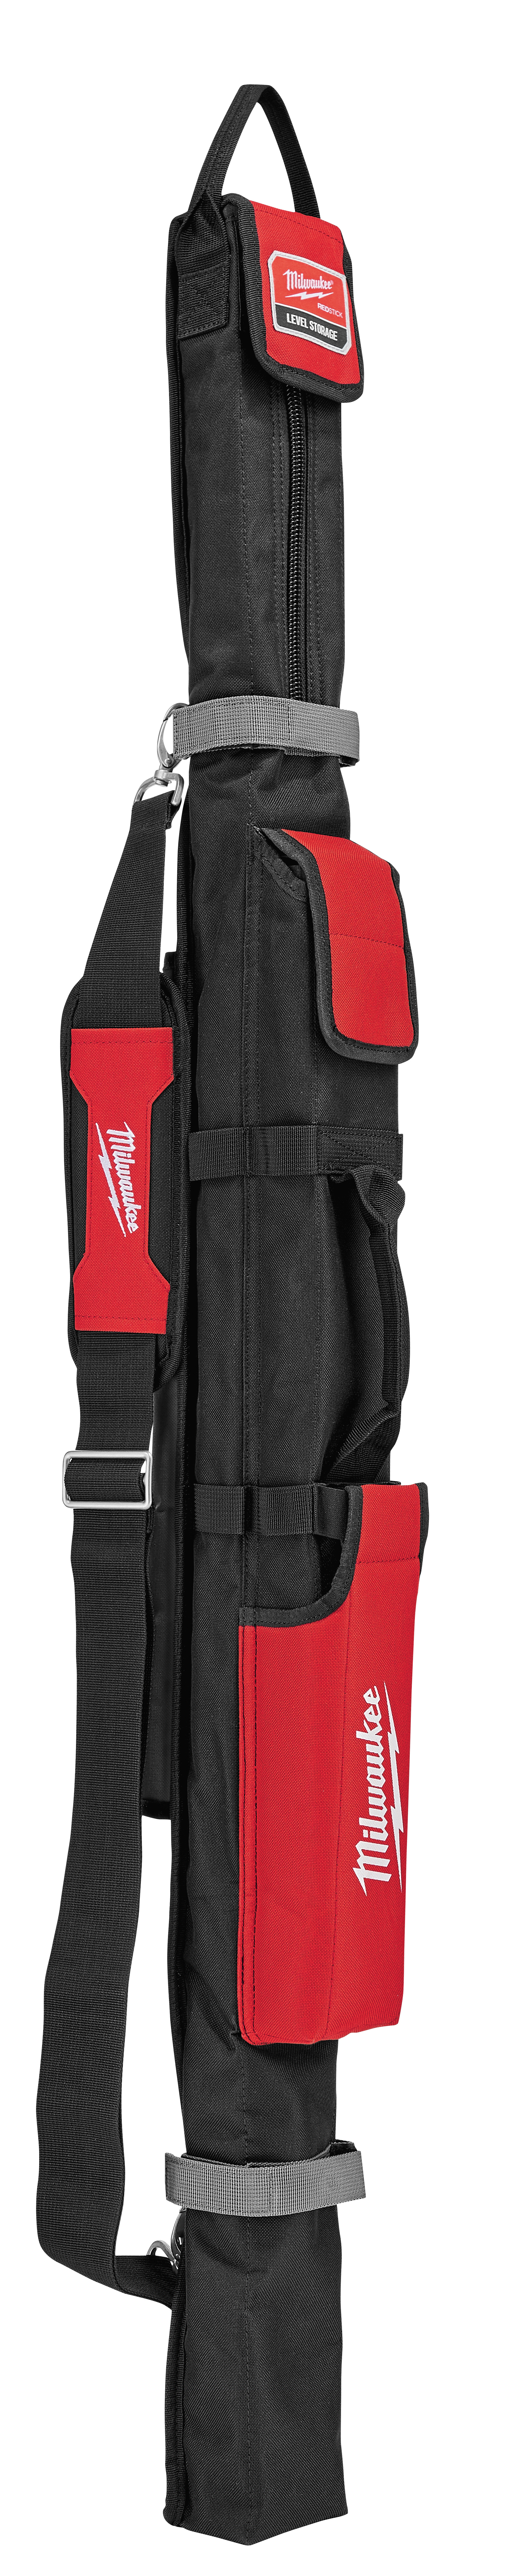 Milwaukee® MLSB48 Level Bag, For Use With 24 in Level, Zipper Closure, 3-Pockets, Nylon, Black/Red